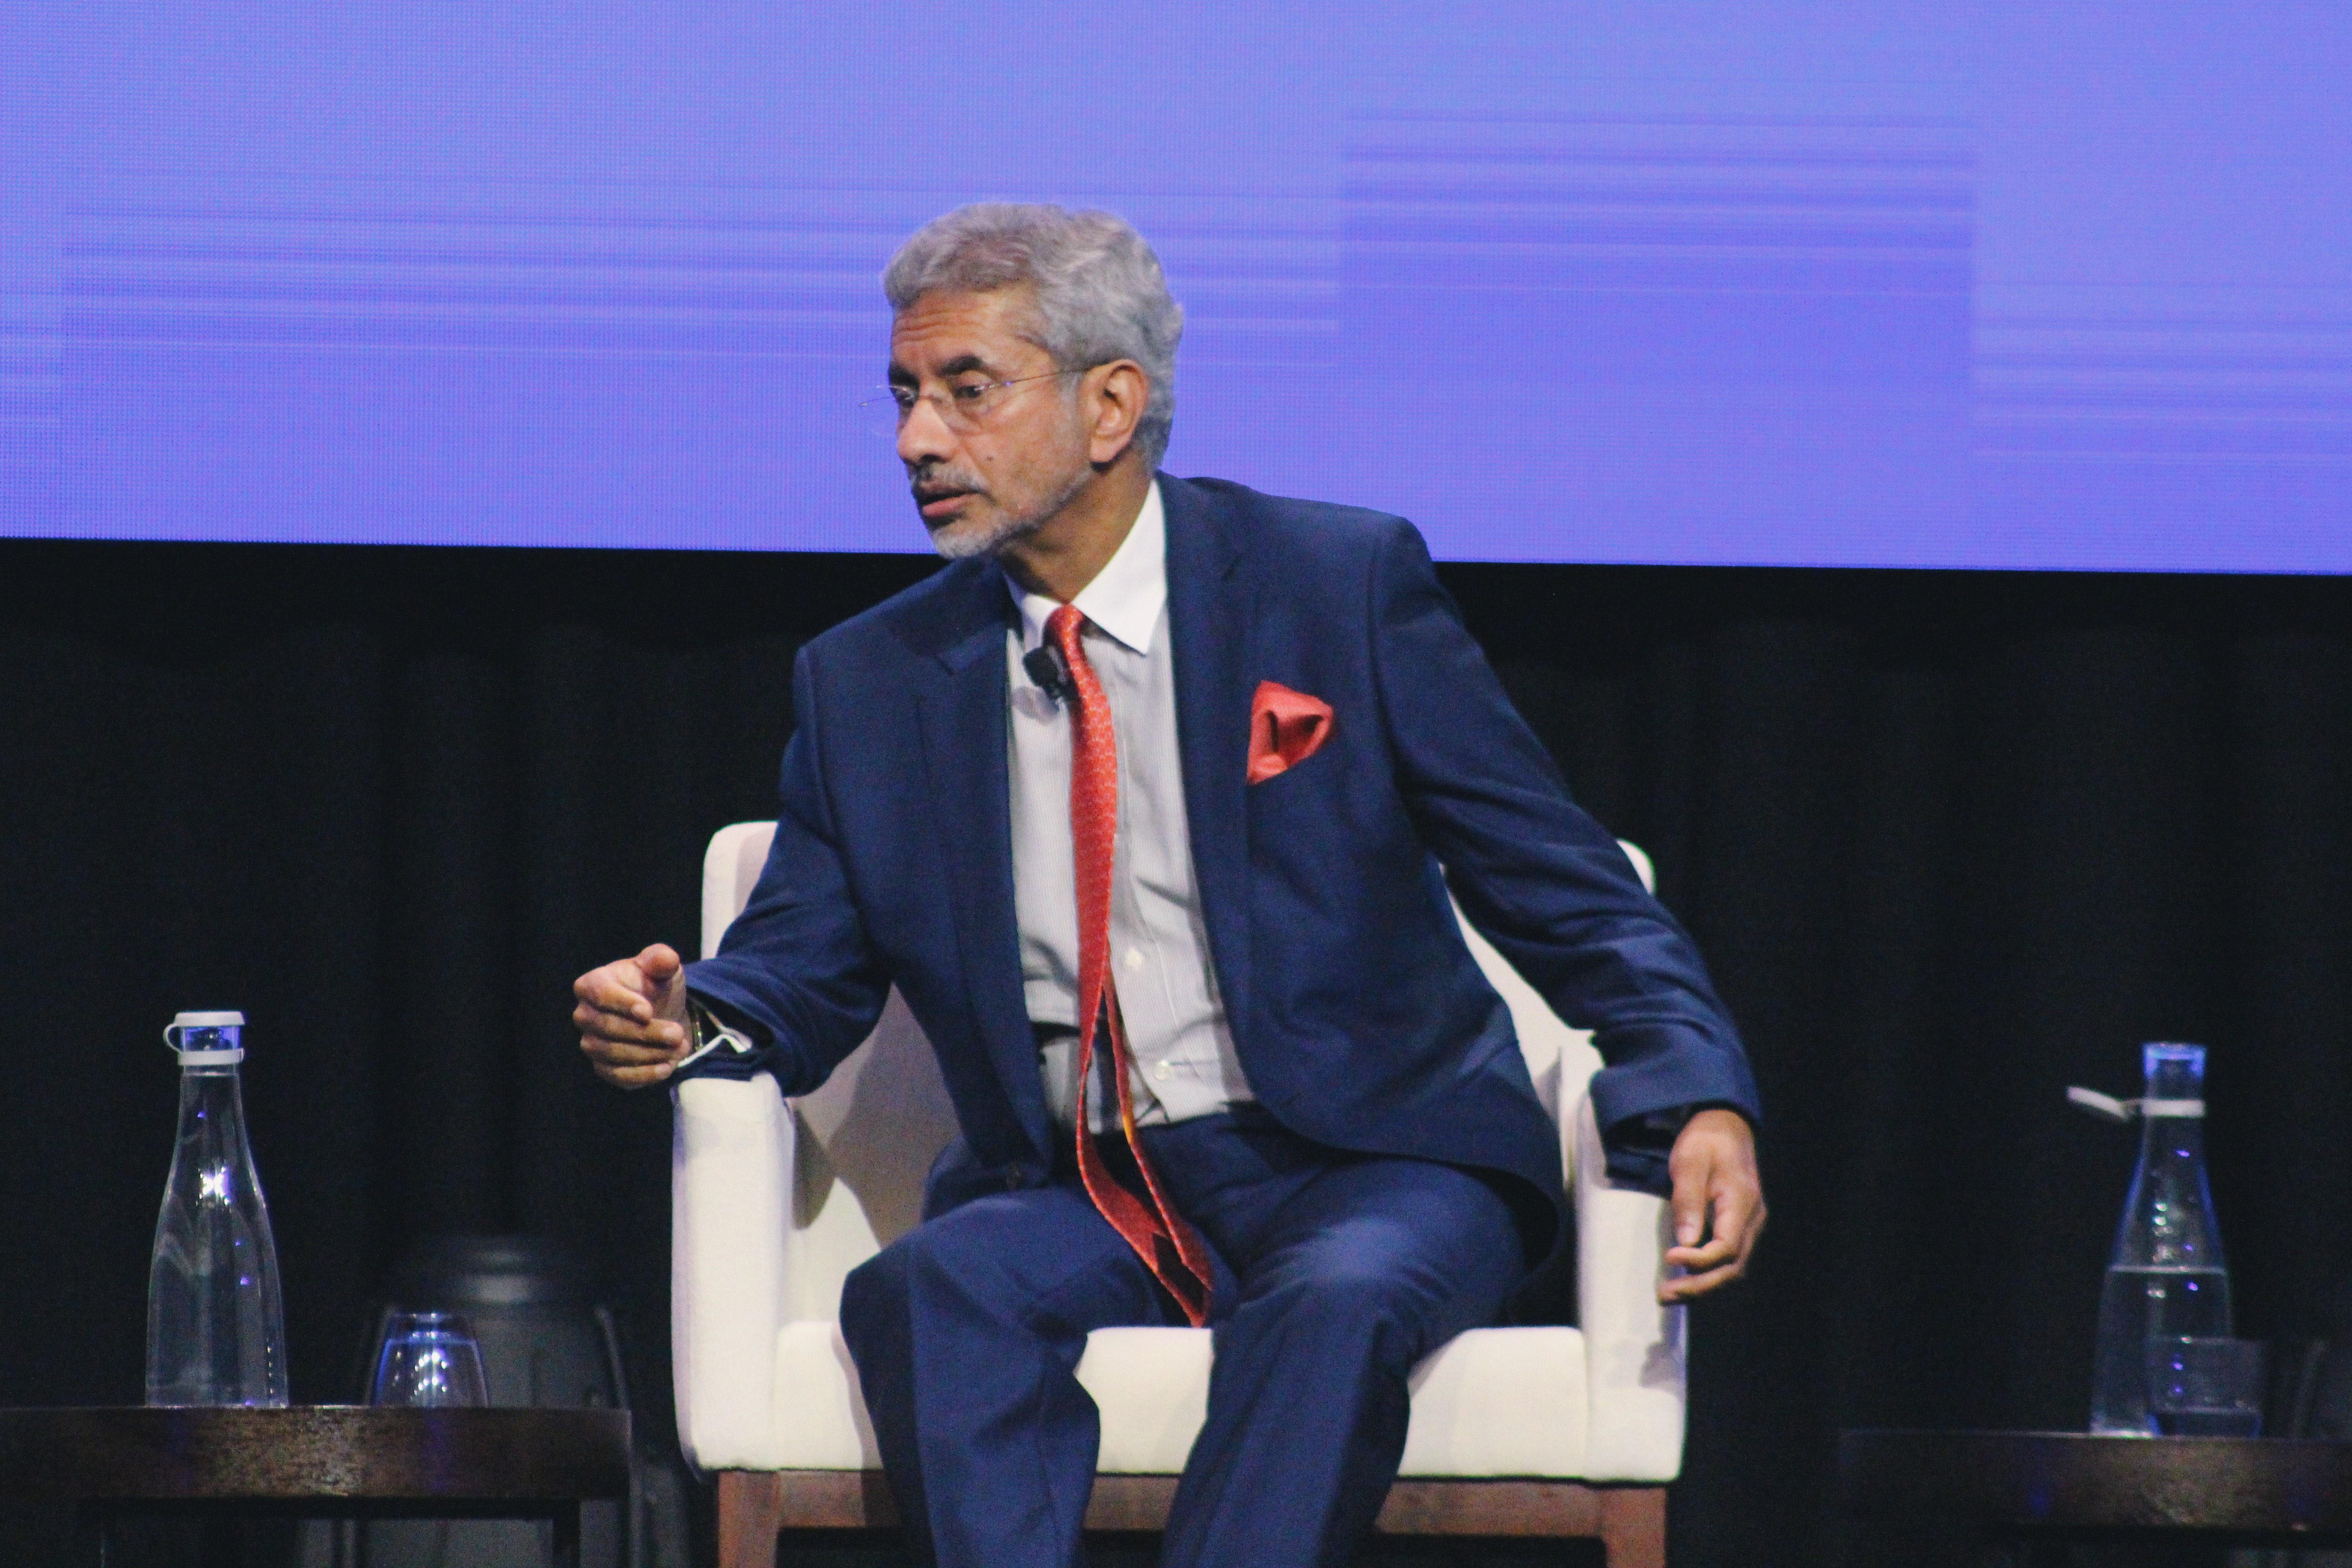 Dr Jaishankar speaks about India's position on foreign policy and economic relations. Photo: Connected to India